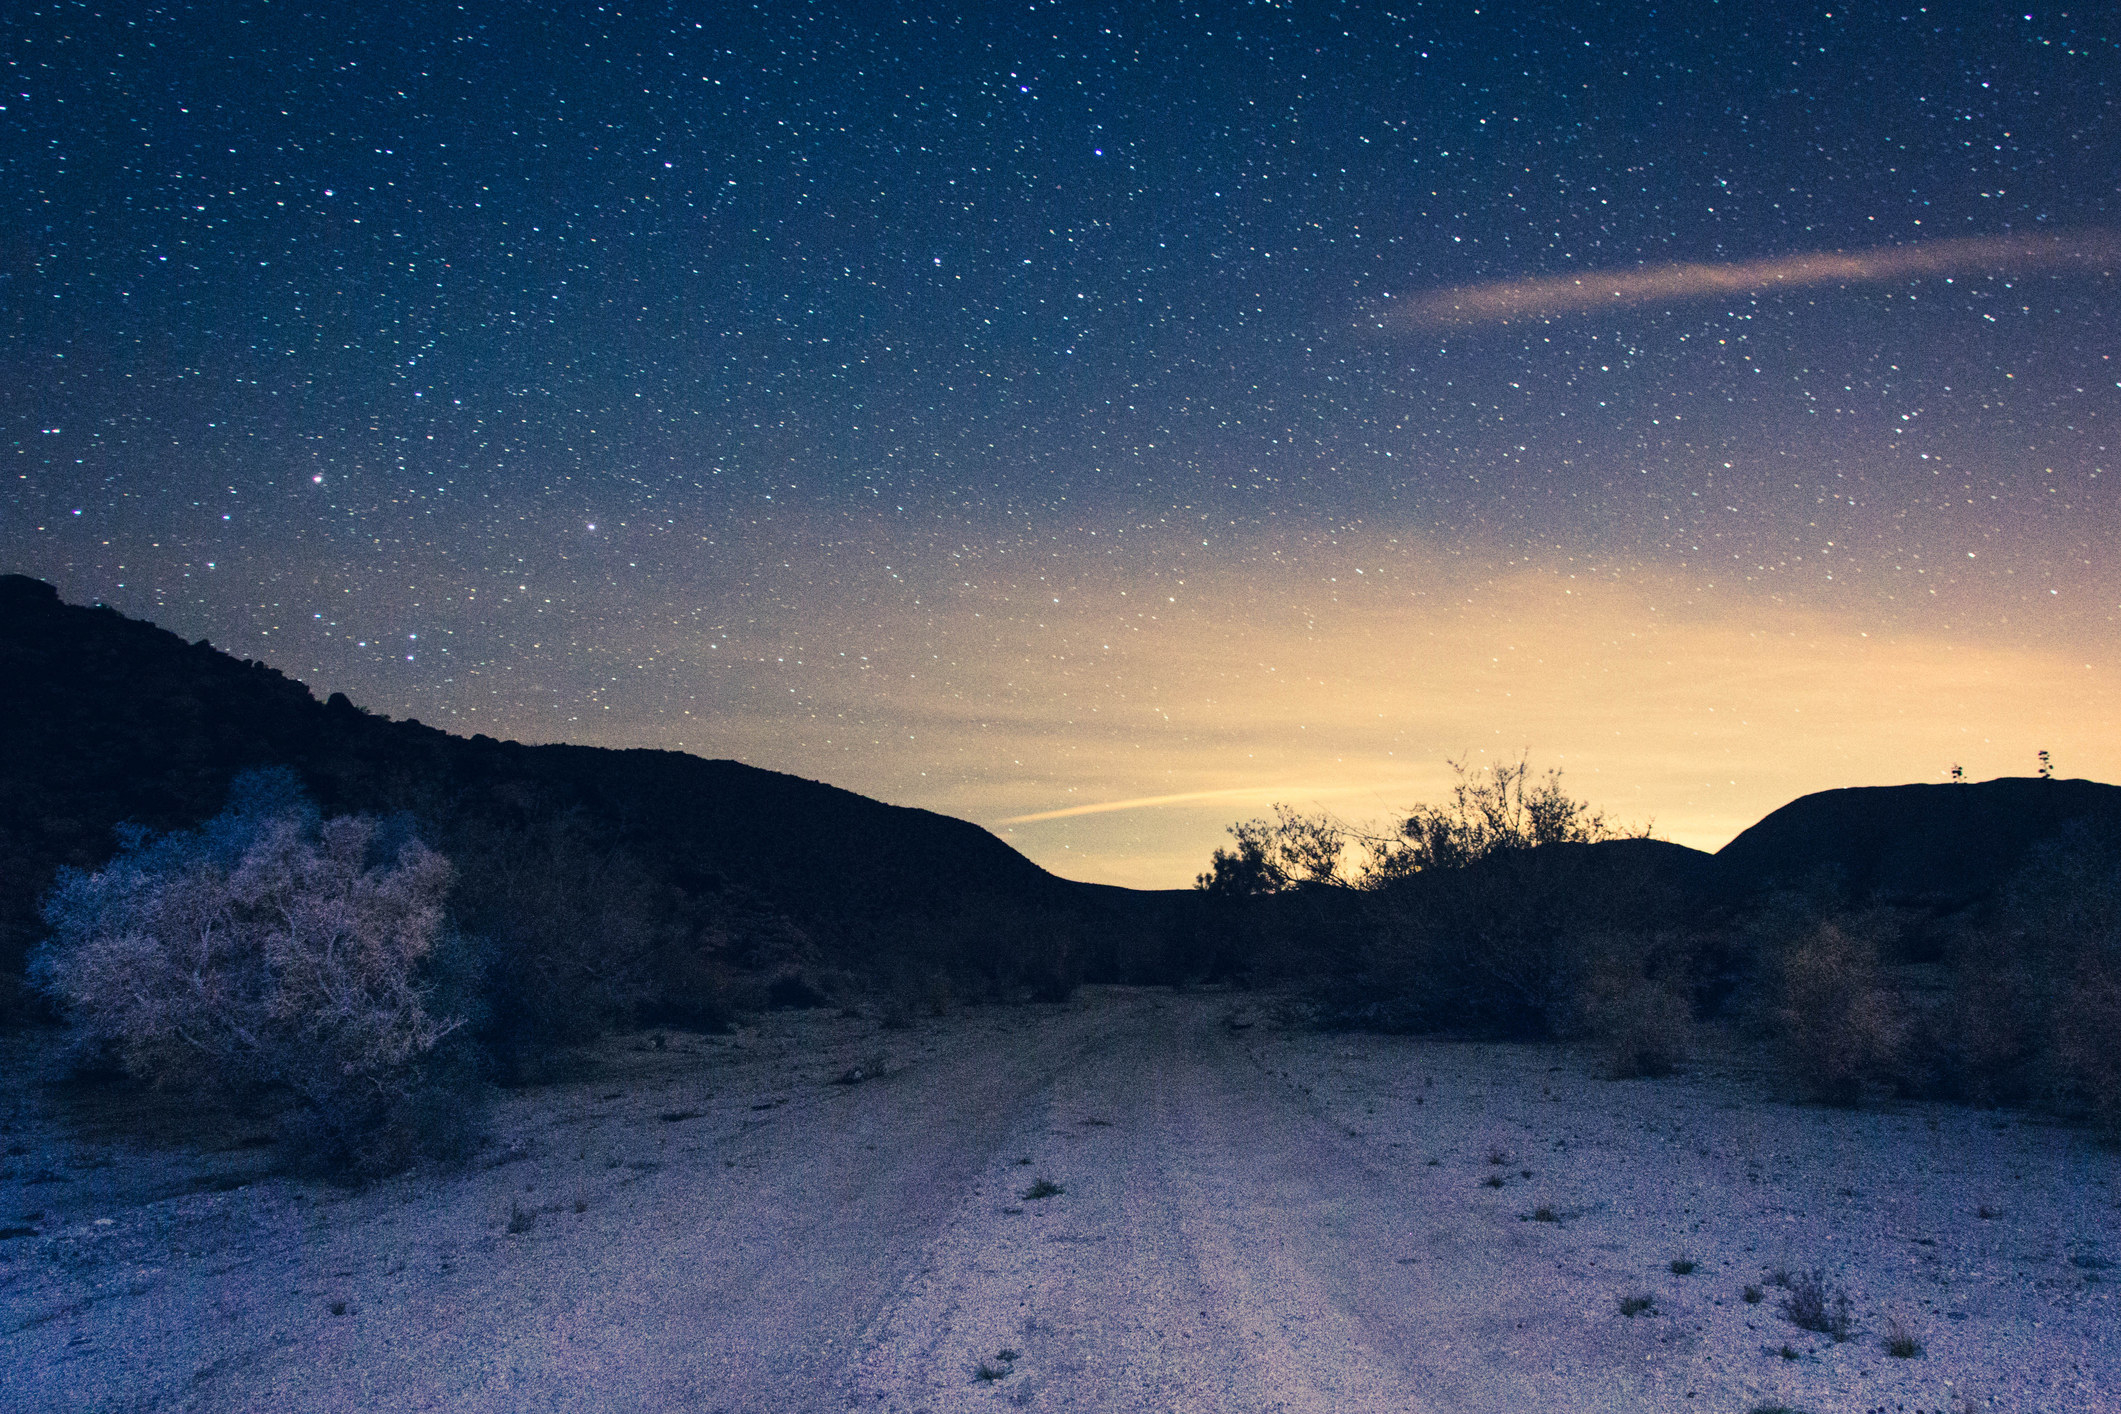 dirt road through the desert at night with stars emerging as the sun sets